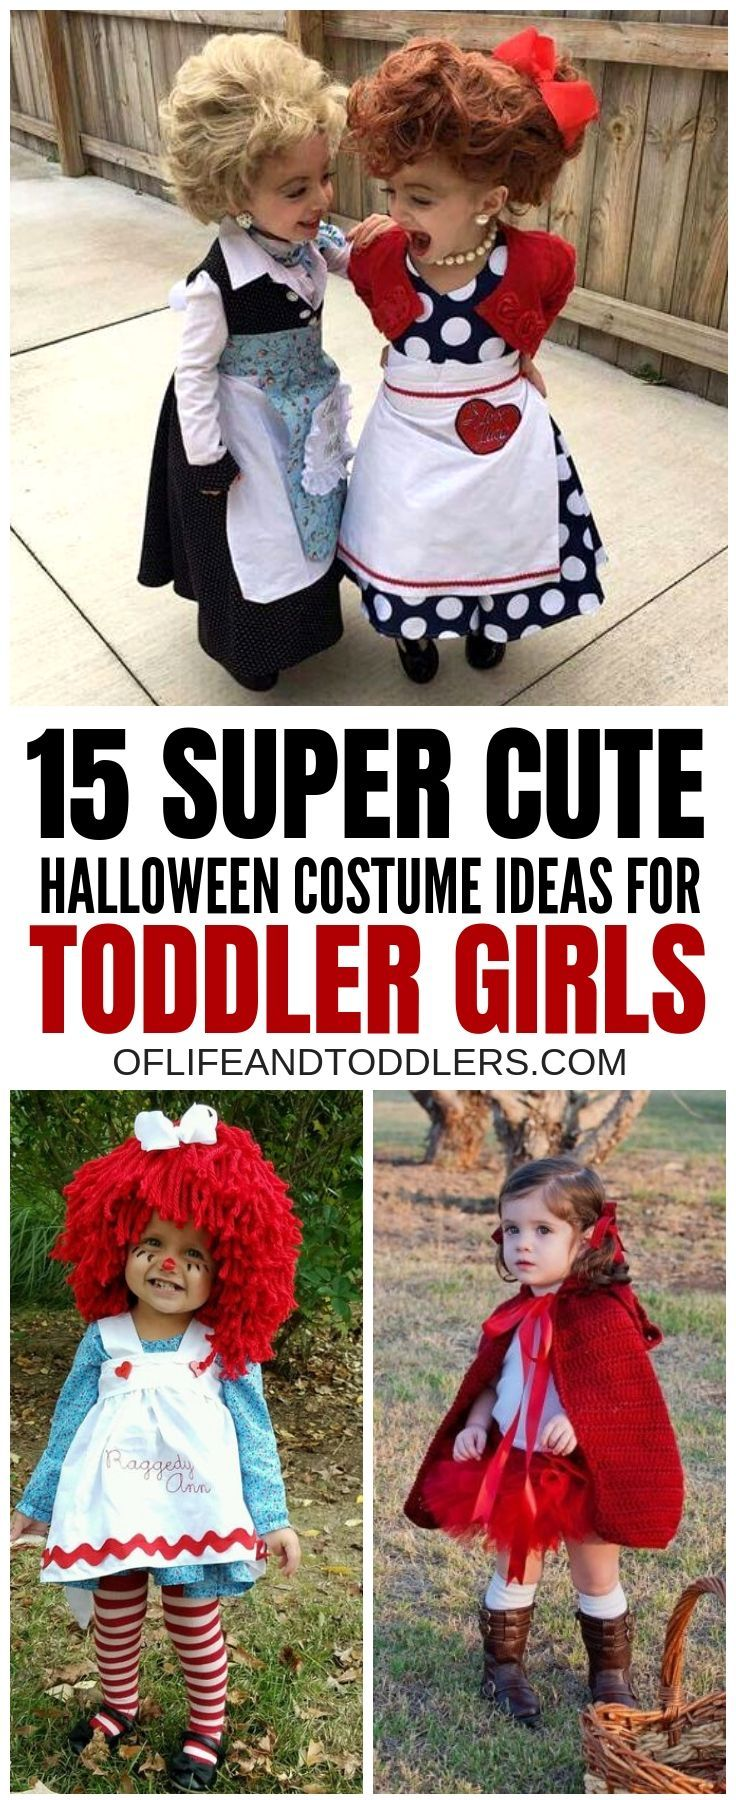 So Adorable Check Out These Super Cute Halloween Costume Ideas For Toddl Halloween Costume Toddler Girl Little Girl Halloween Costumes Cute Halloween Costumes